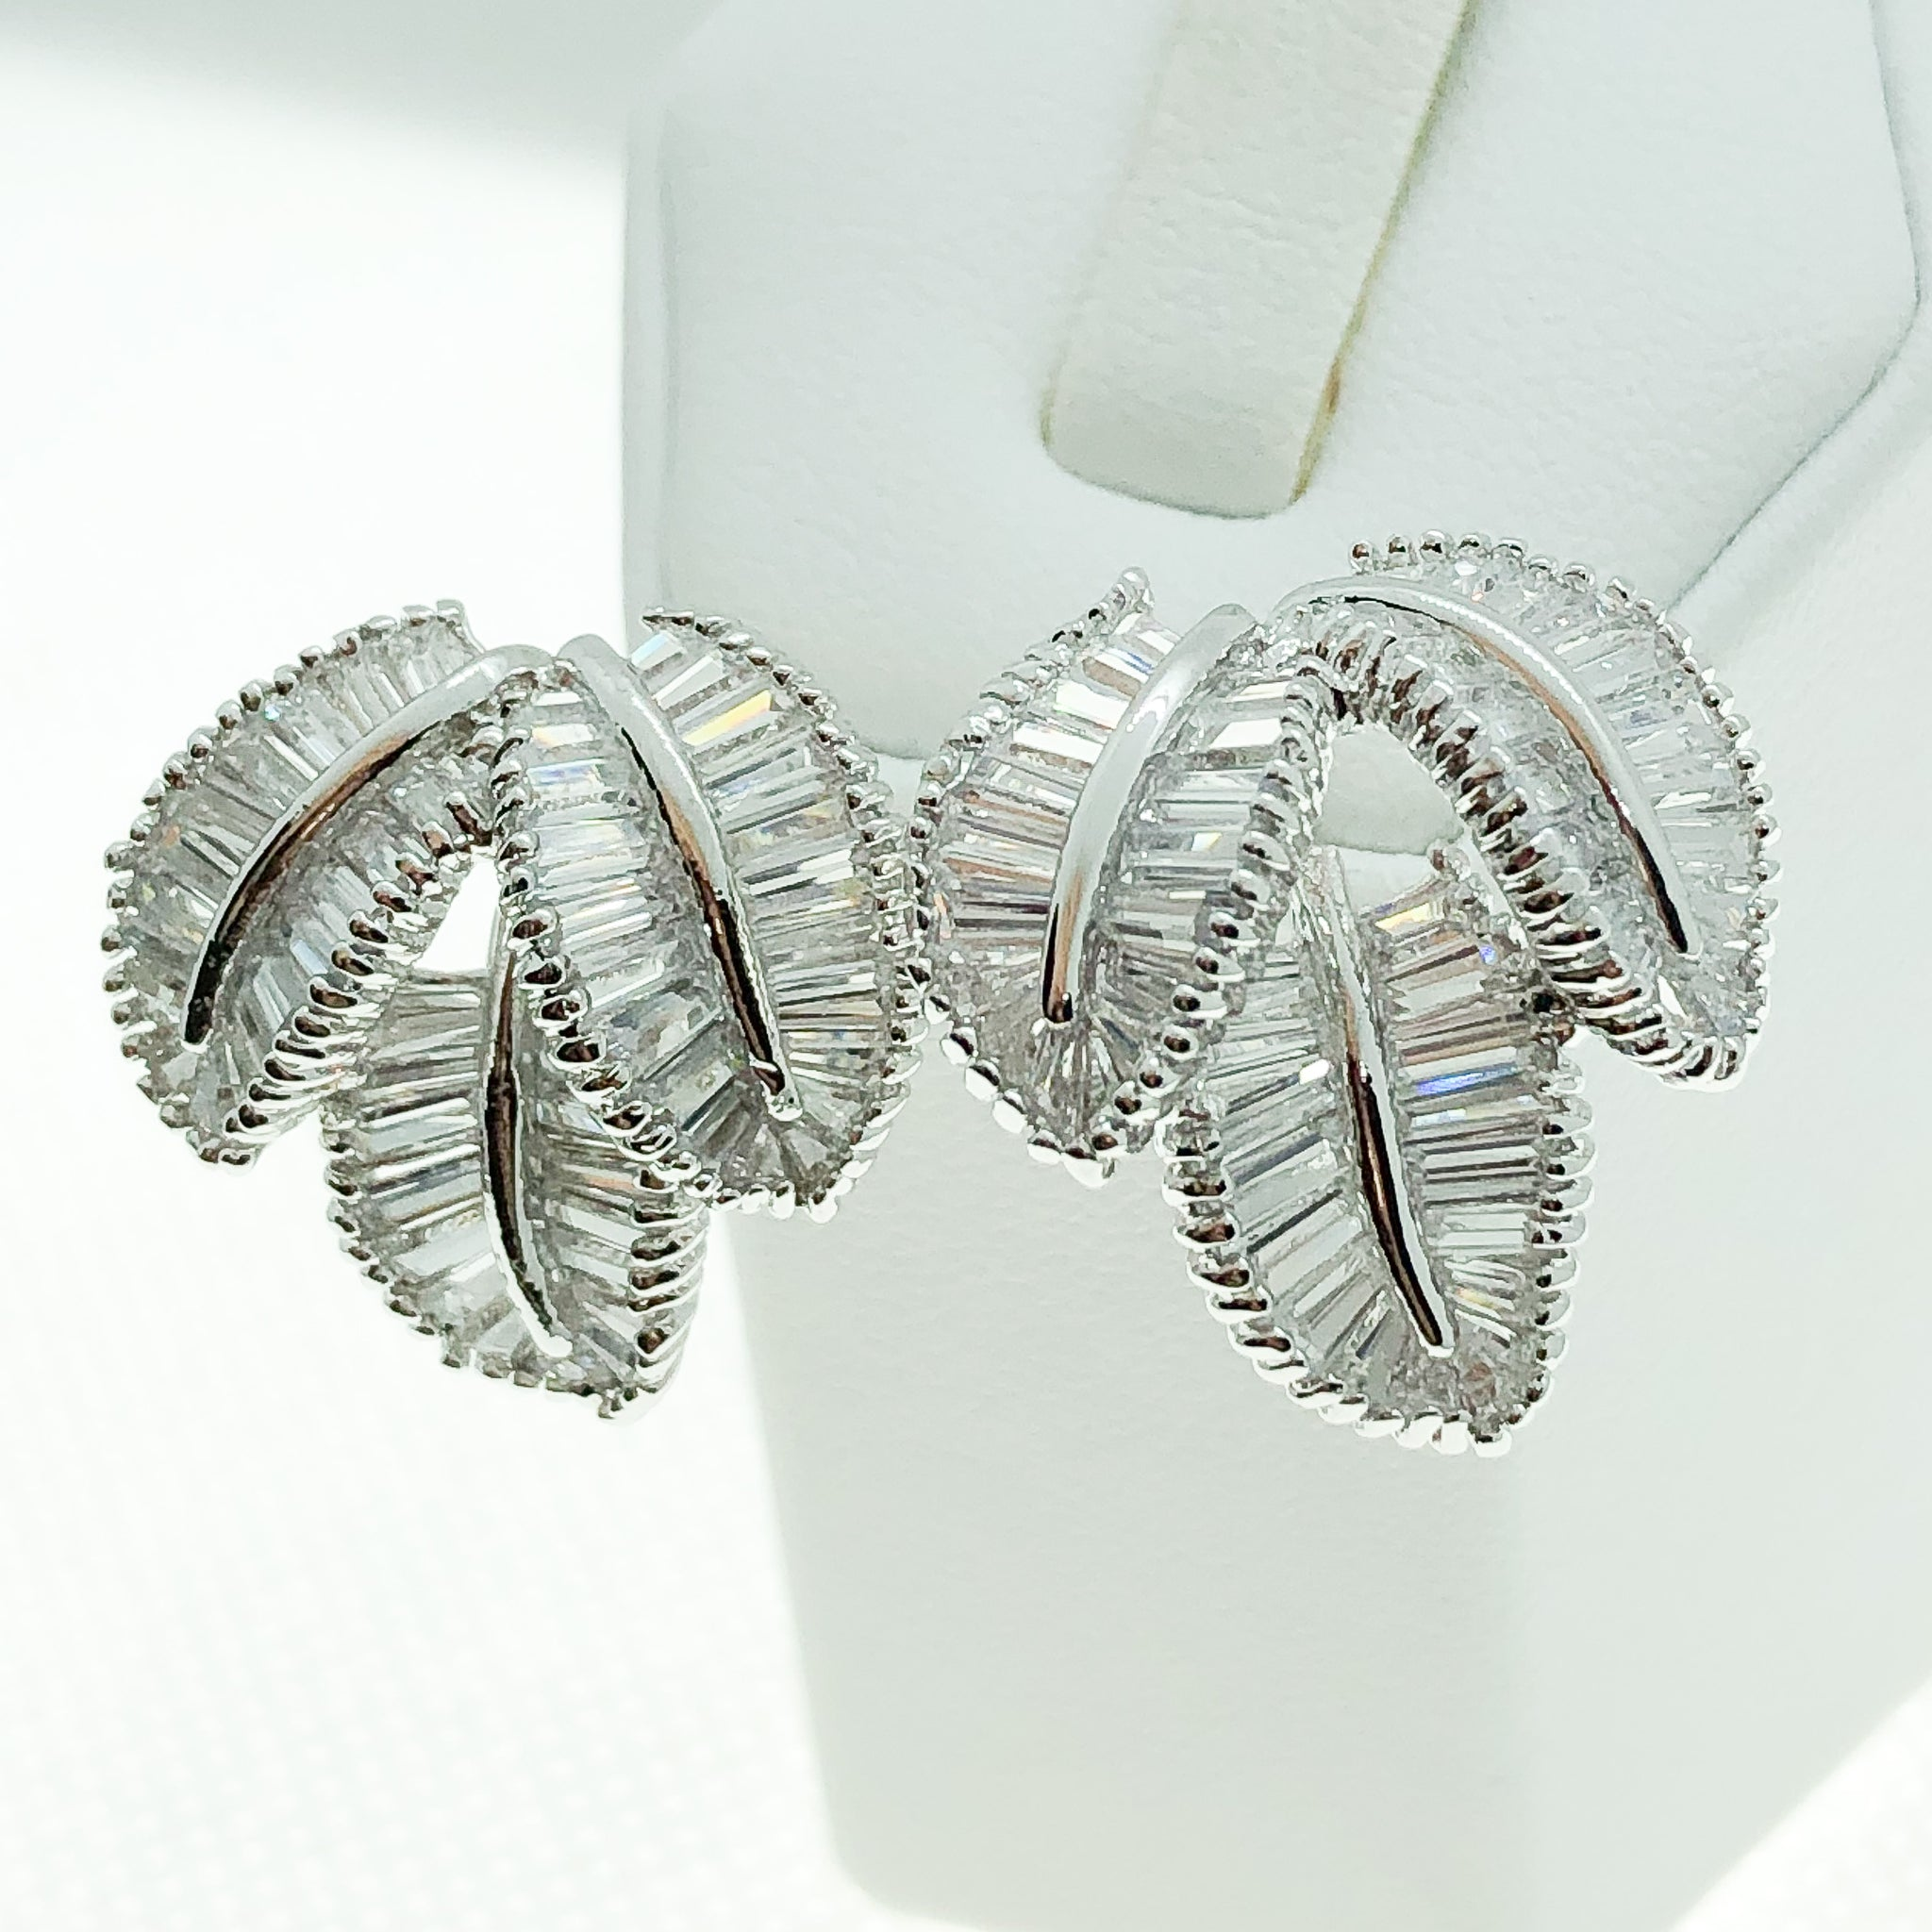 ID: E2353 WOMEN JEWELRY 18K WHITE GOLD GF CLEAR STONES EARRINGS FASHION LADY WEDDING PARTY STUD UNIQUE THREE LEAVES DESIGN